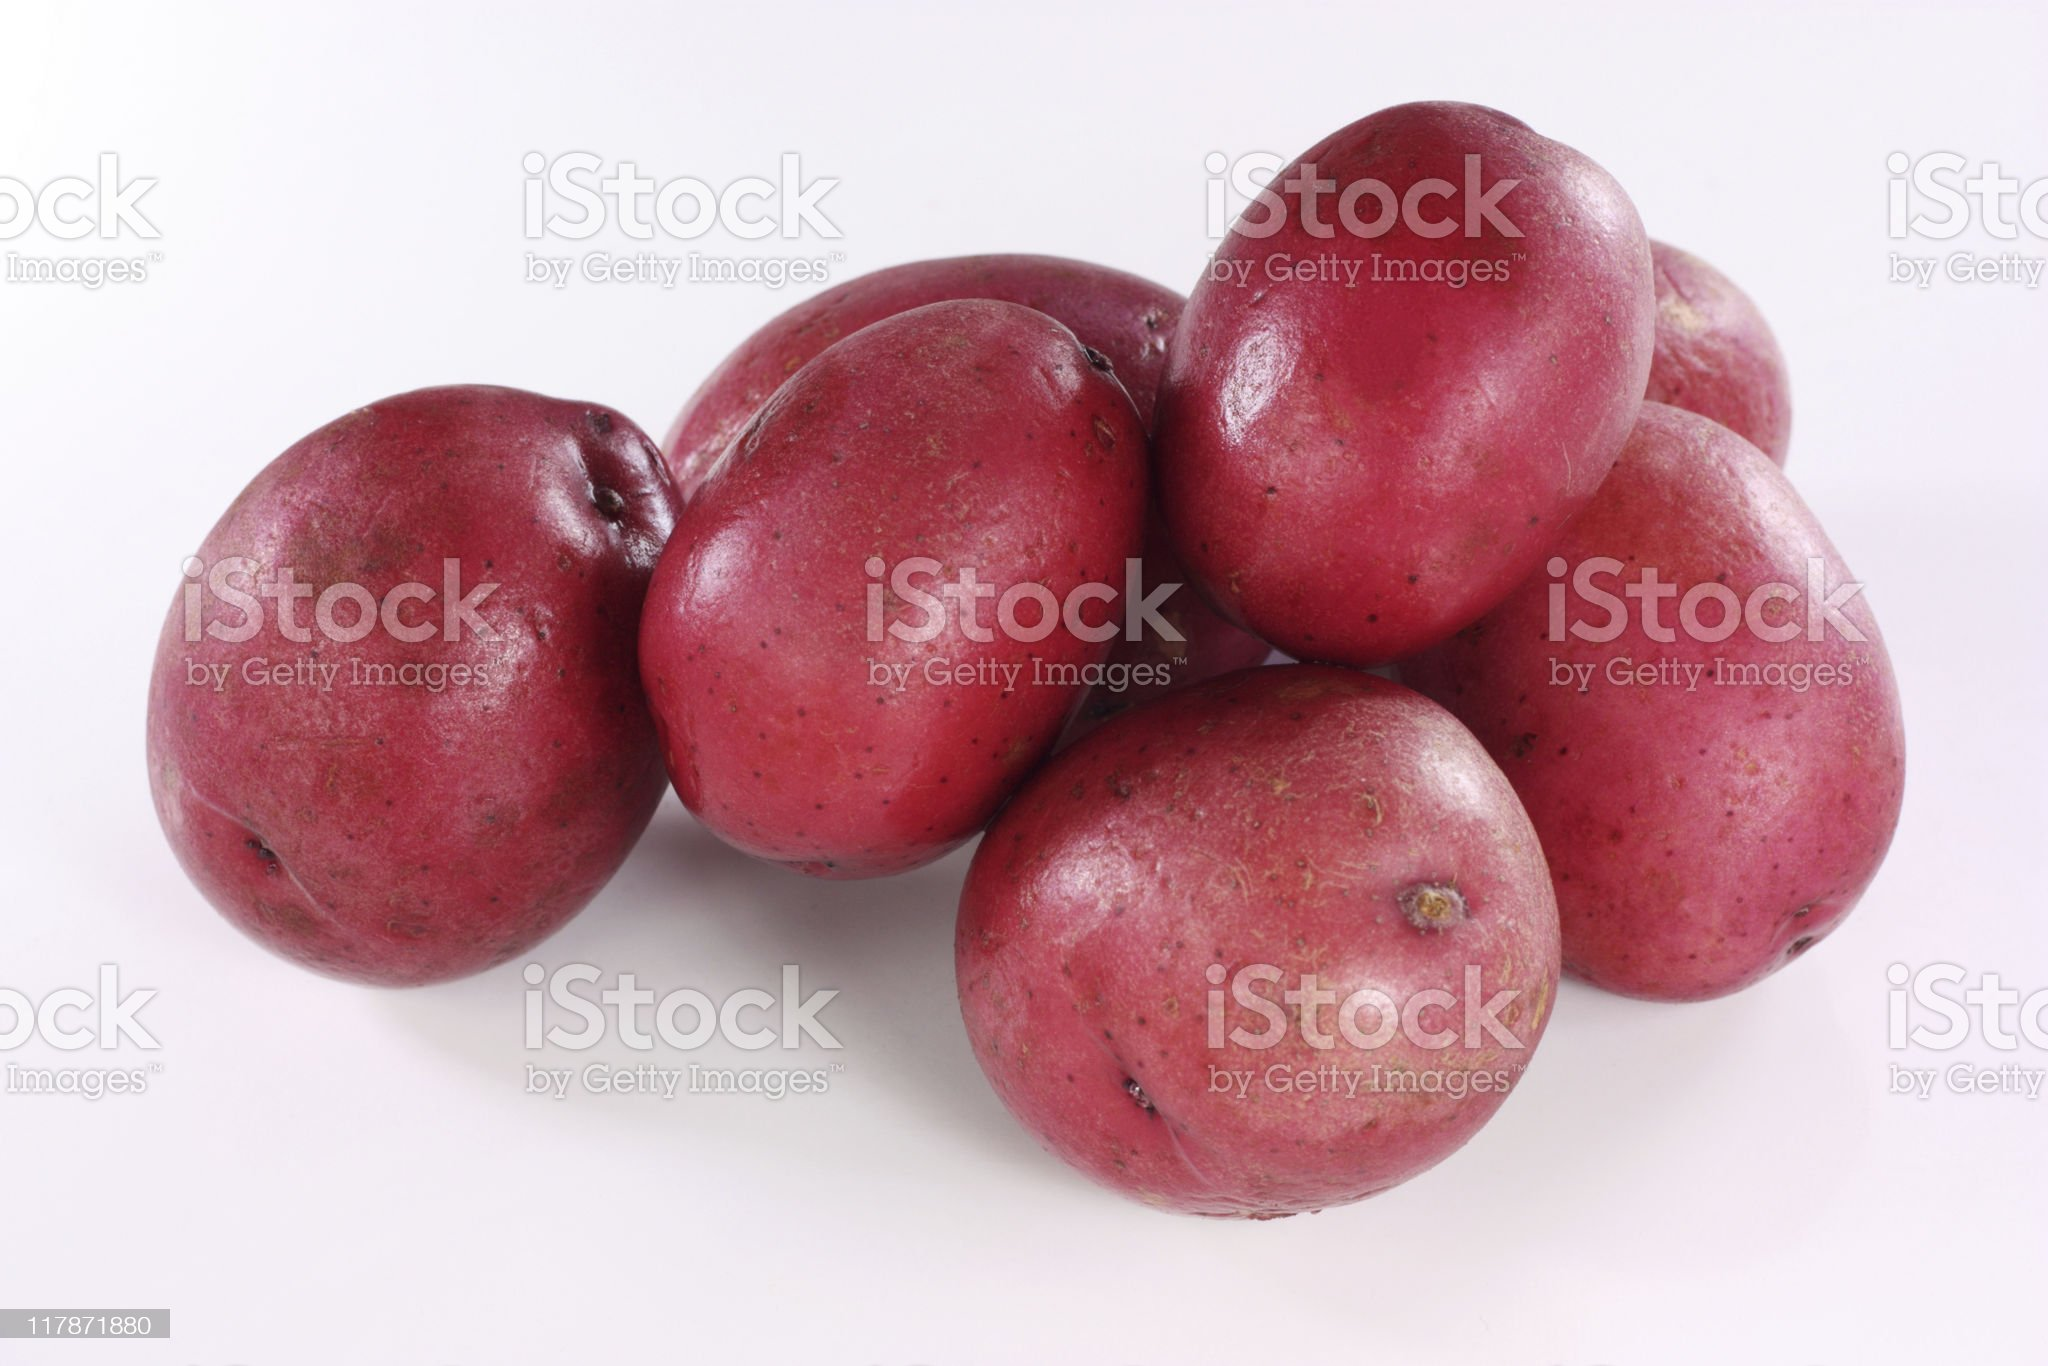 Baby red potatoes royalty-free stock photo